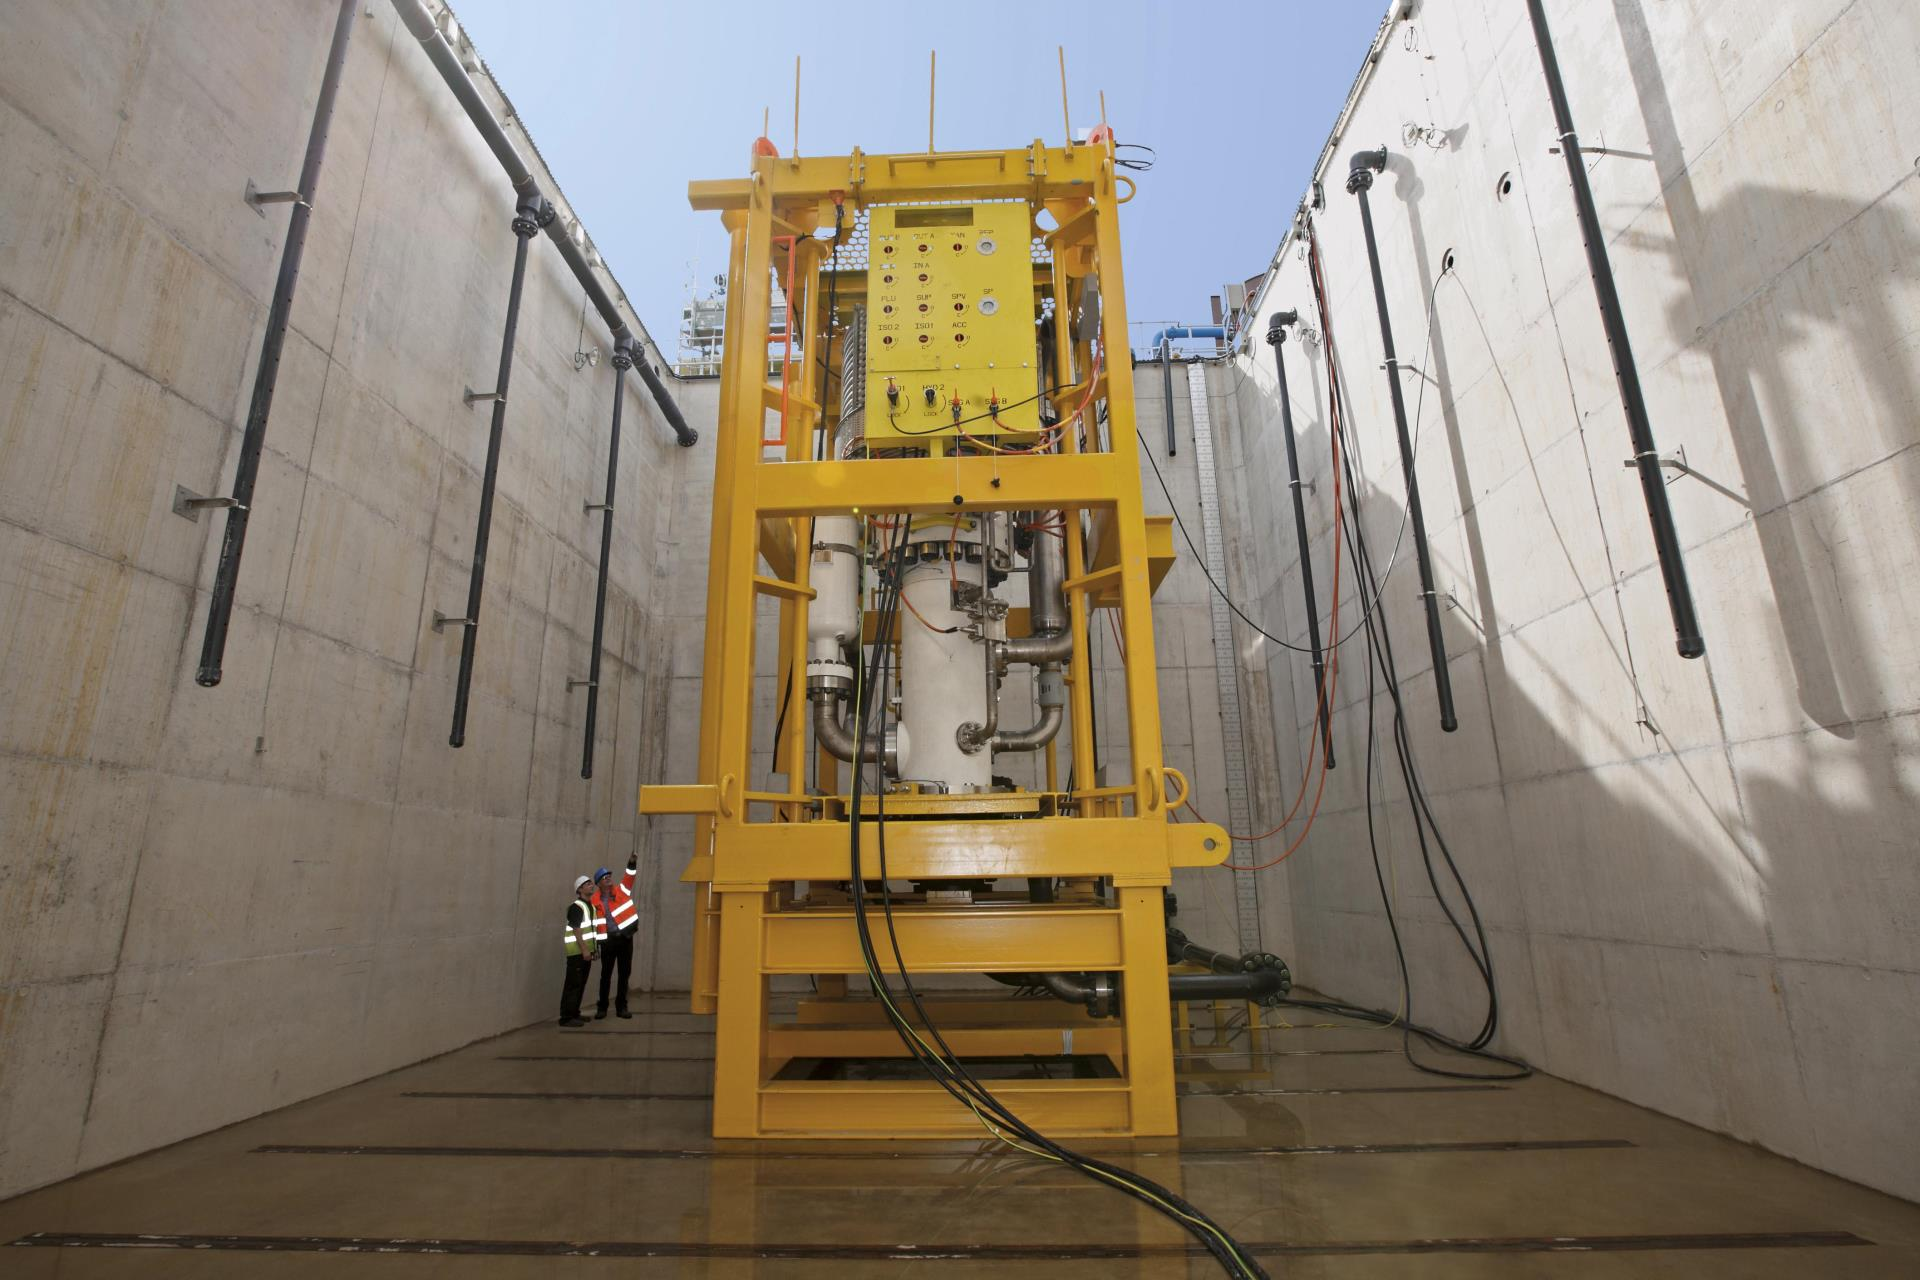 Sulzer is developing innovative pumping subsea solutions